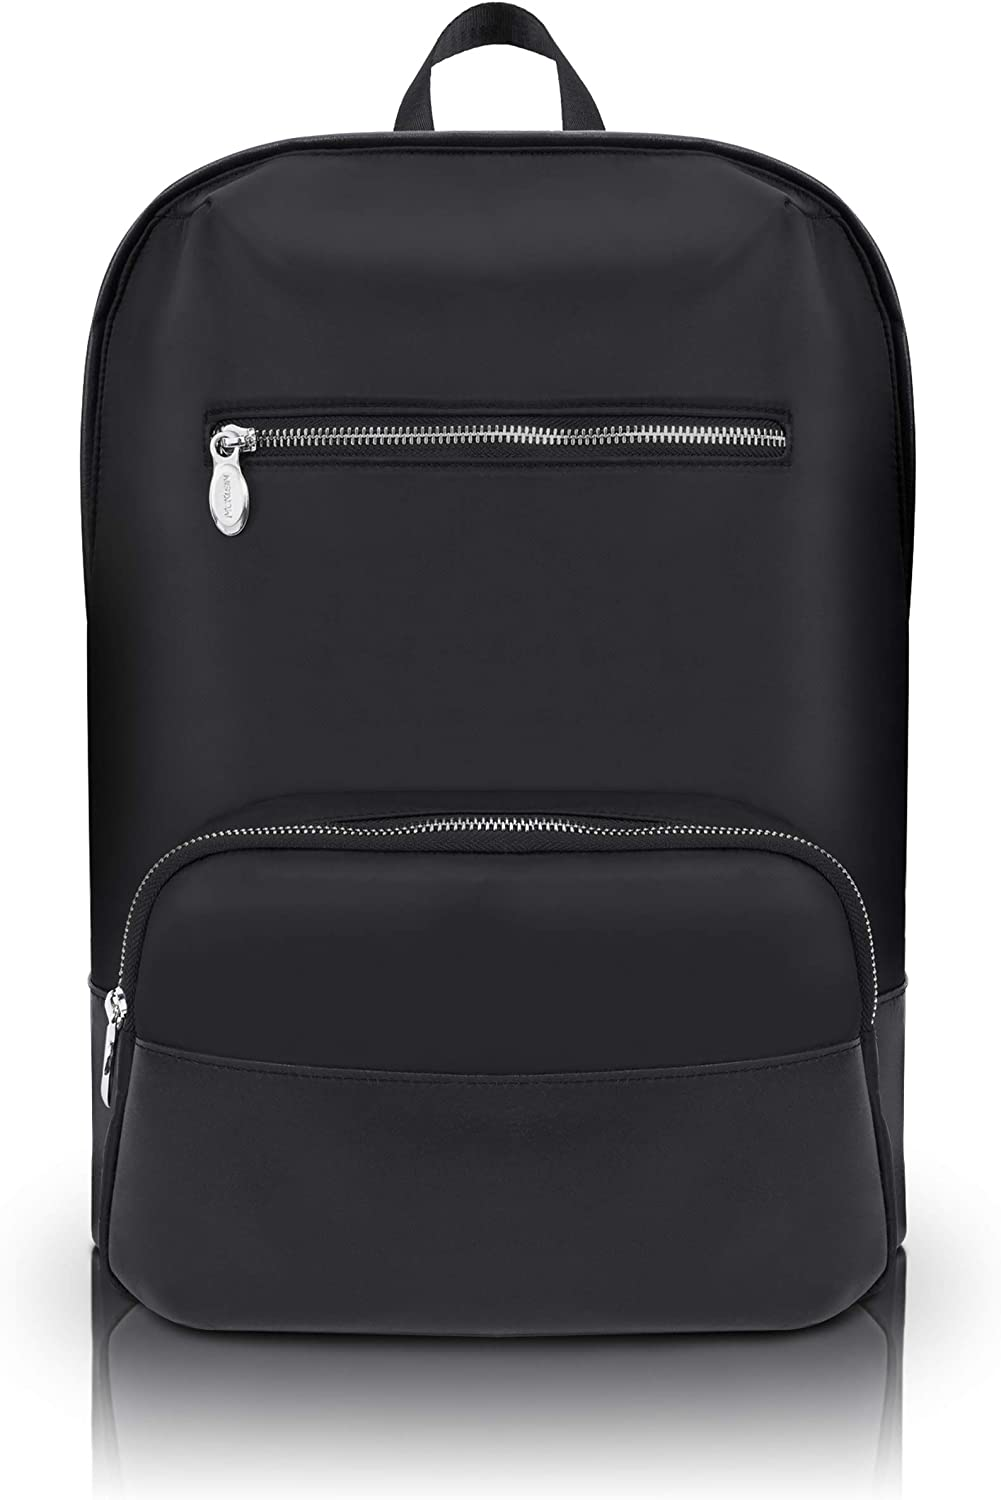 McKlein USA Brooklyn Laptop Backpack